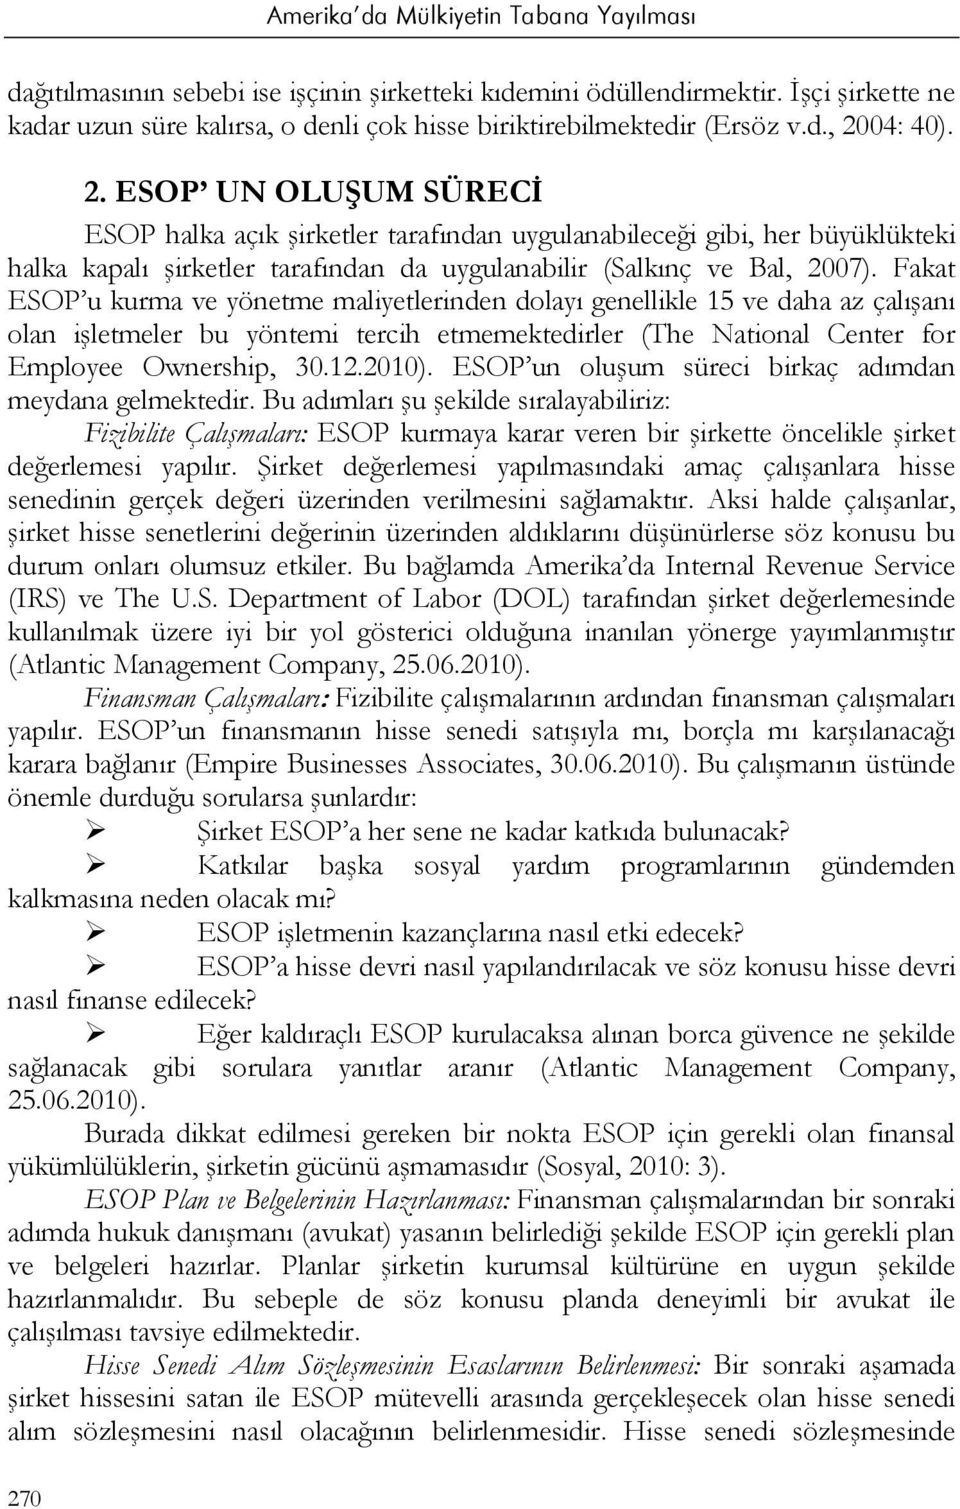 Fakat ESOP u kurma ve yönetme maliyetlerinden dolayı genellikle 15 ve daha az çalışanı olan işletmeler bu yöntemi tercih etmemektedirler (The National Center for Employee Ownership, 30.12.2010).